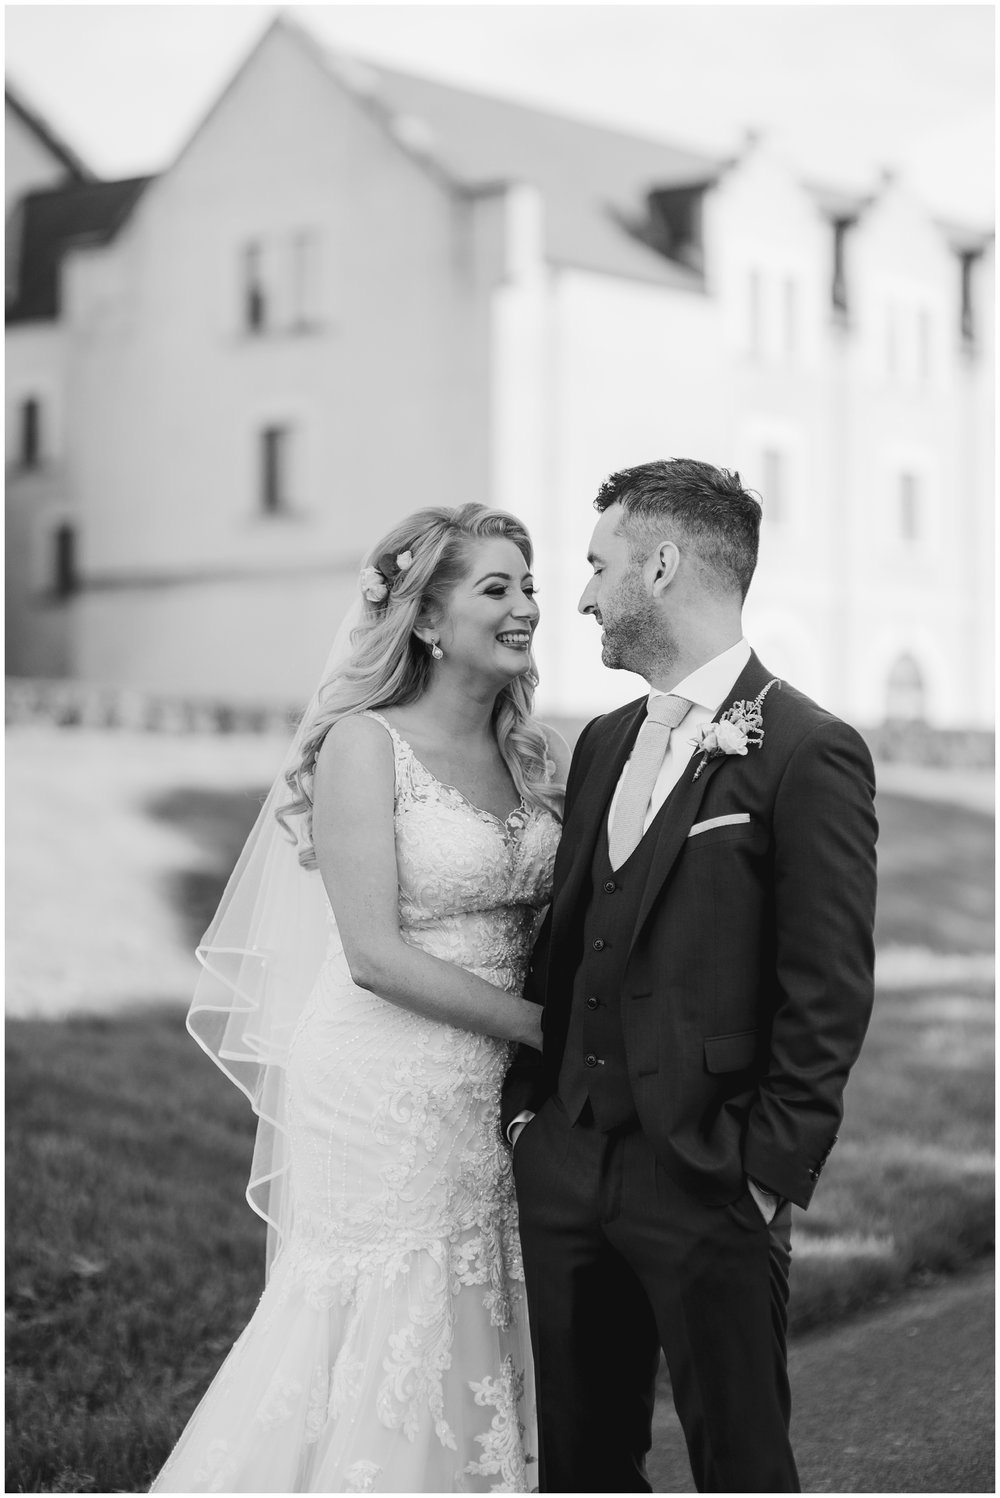 louise_keith_lough_erne_wedding_jude_browne_photography_0058.jpg